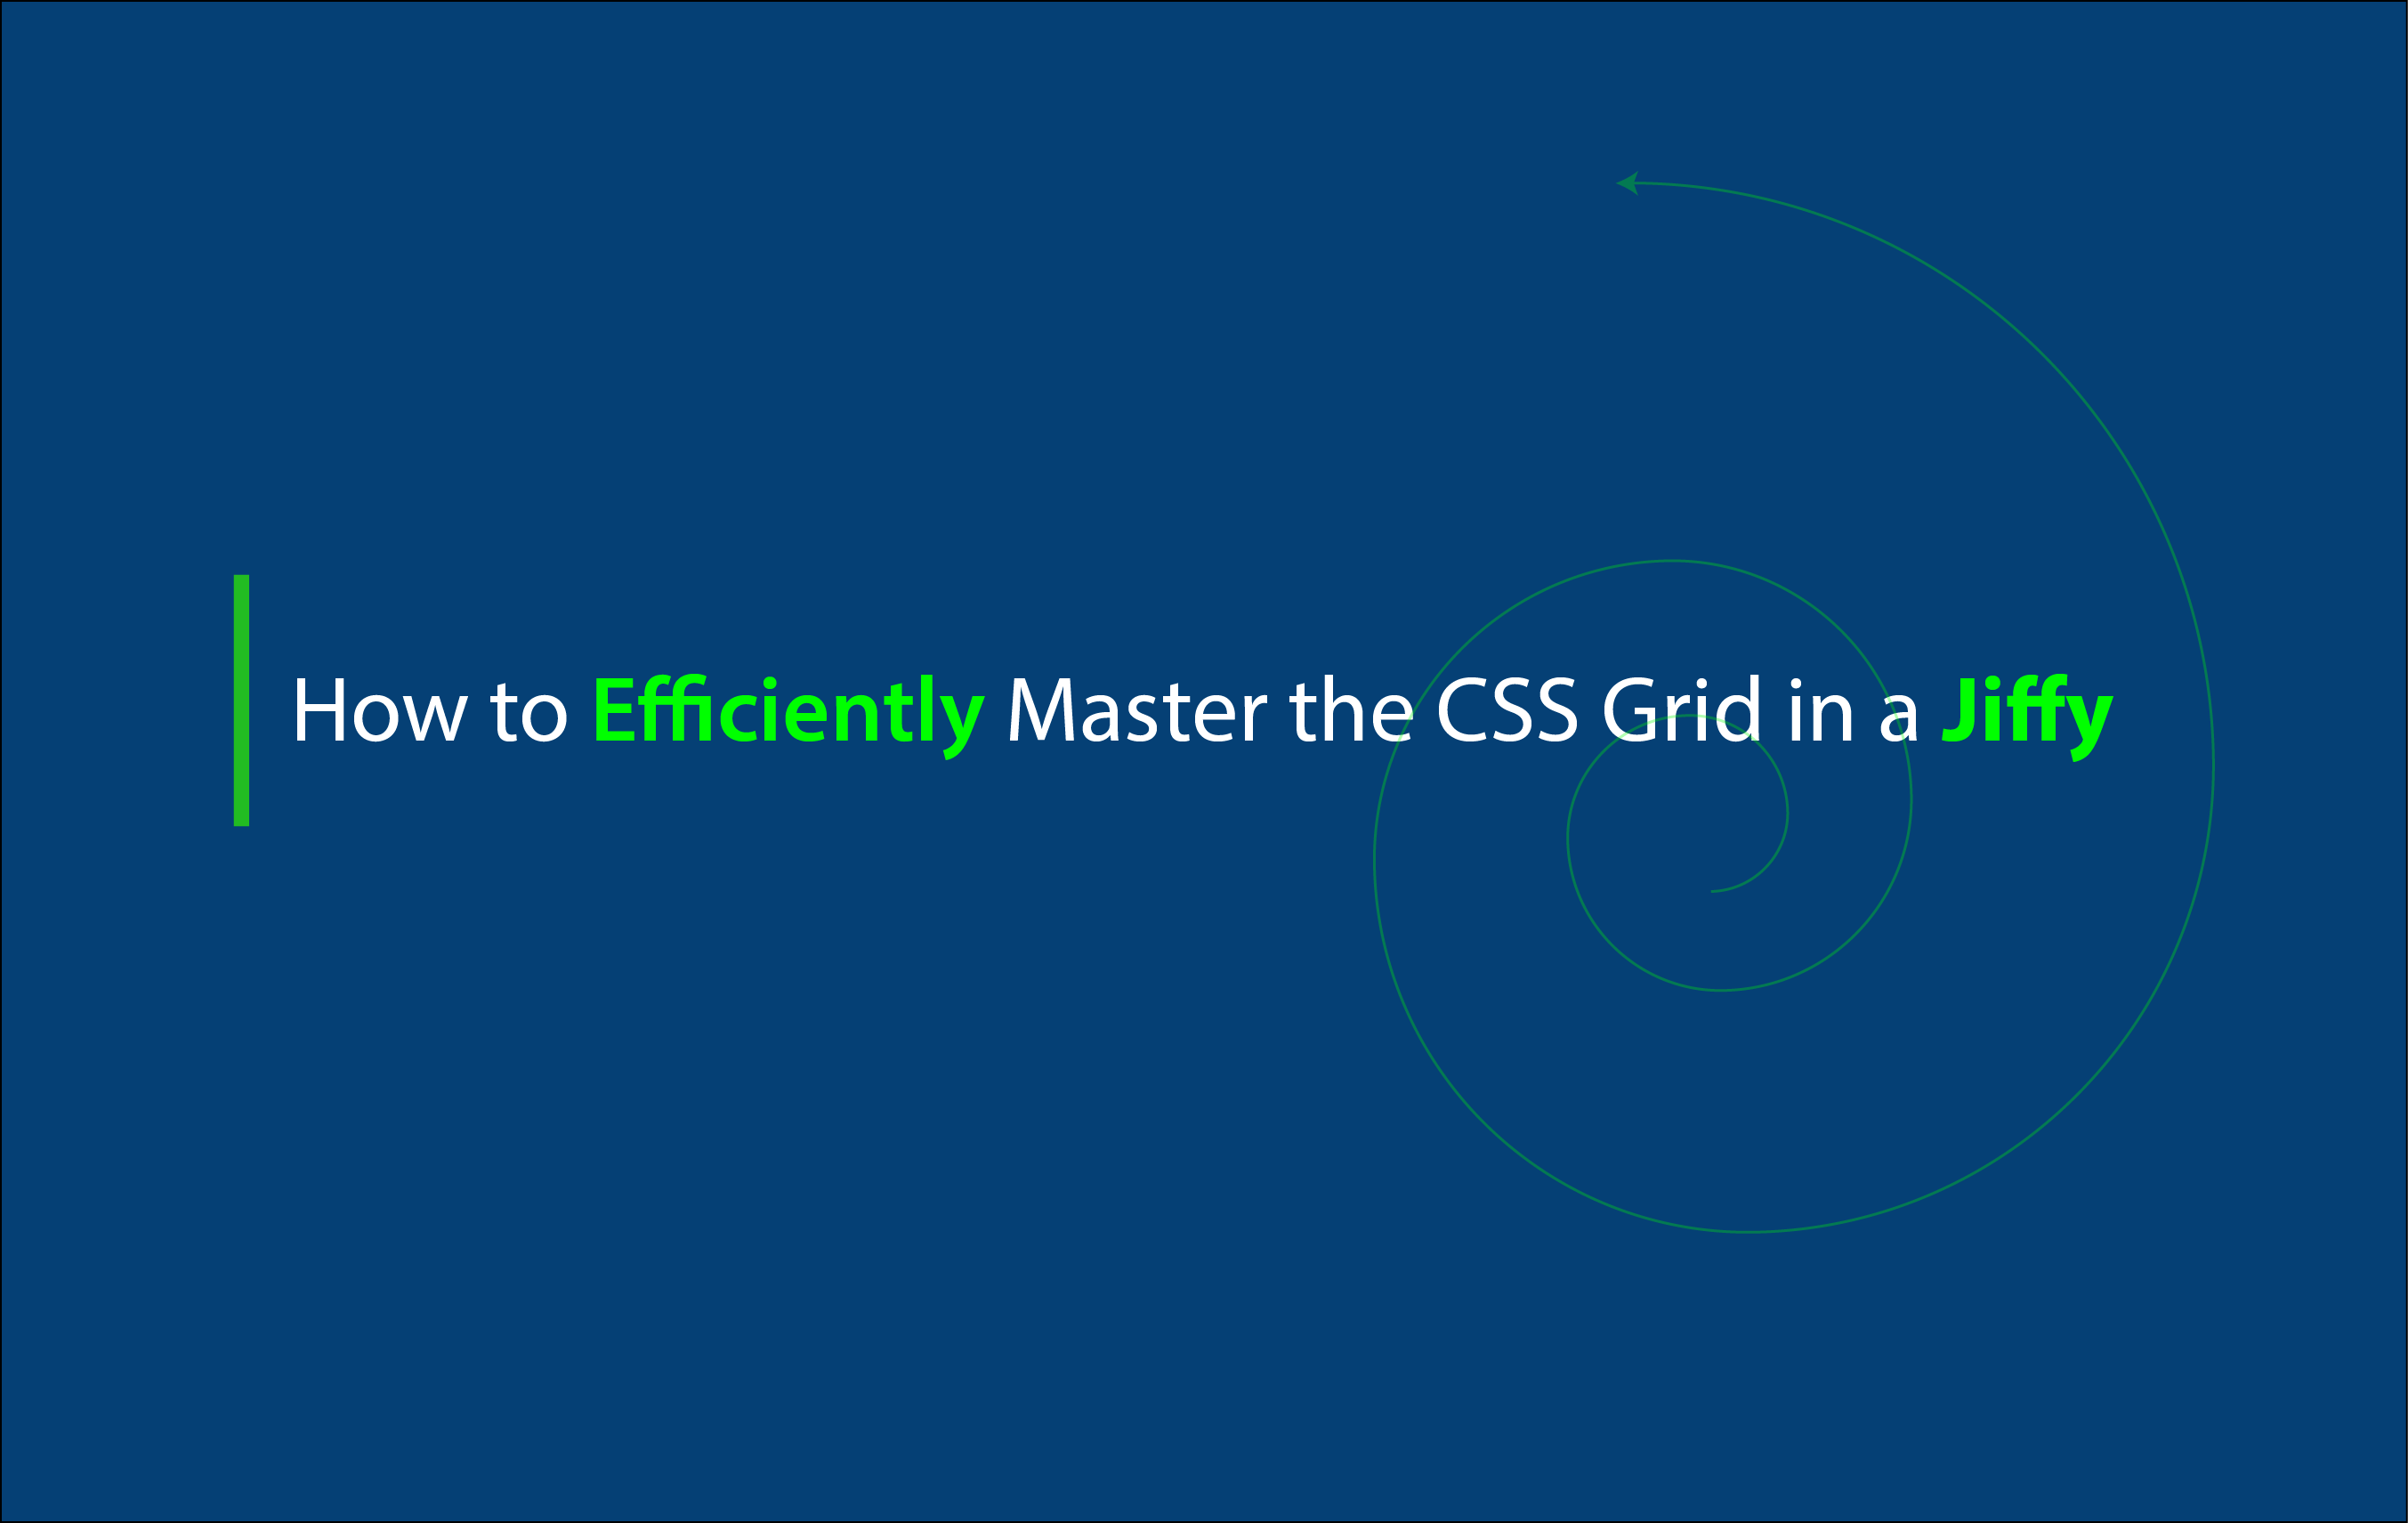 How to Efficiently Master the CSS Grid — in a Jiffy